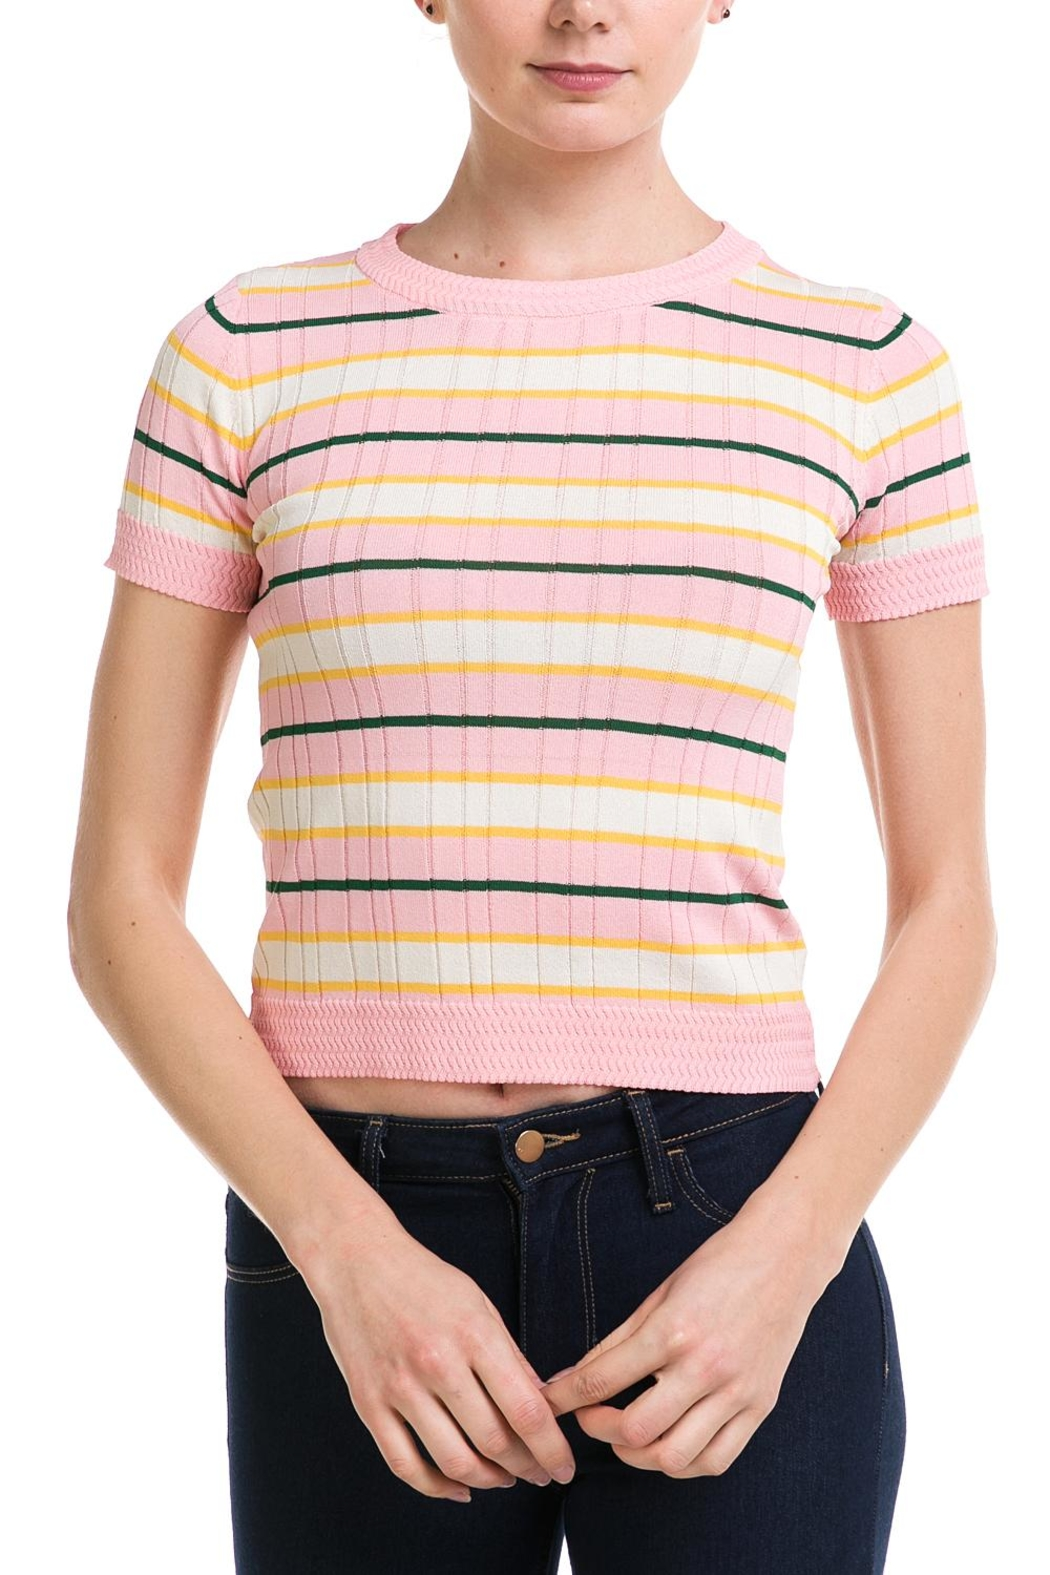 Lumiere Striped Knit Top - Main Image